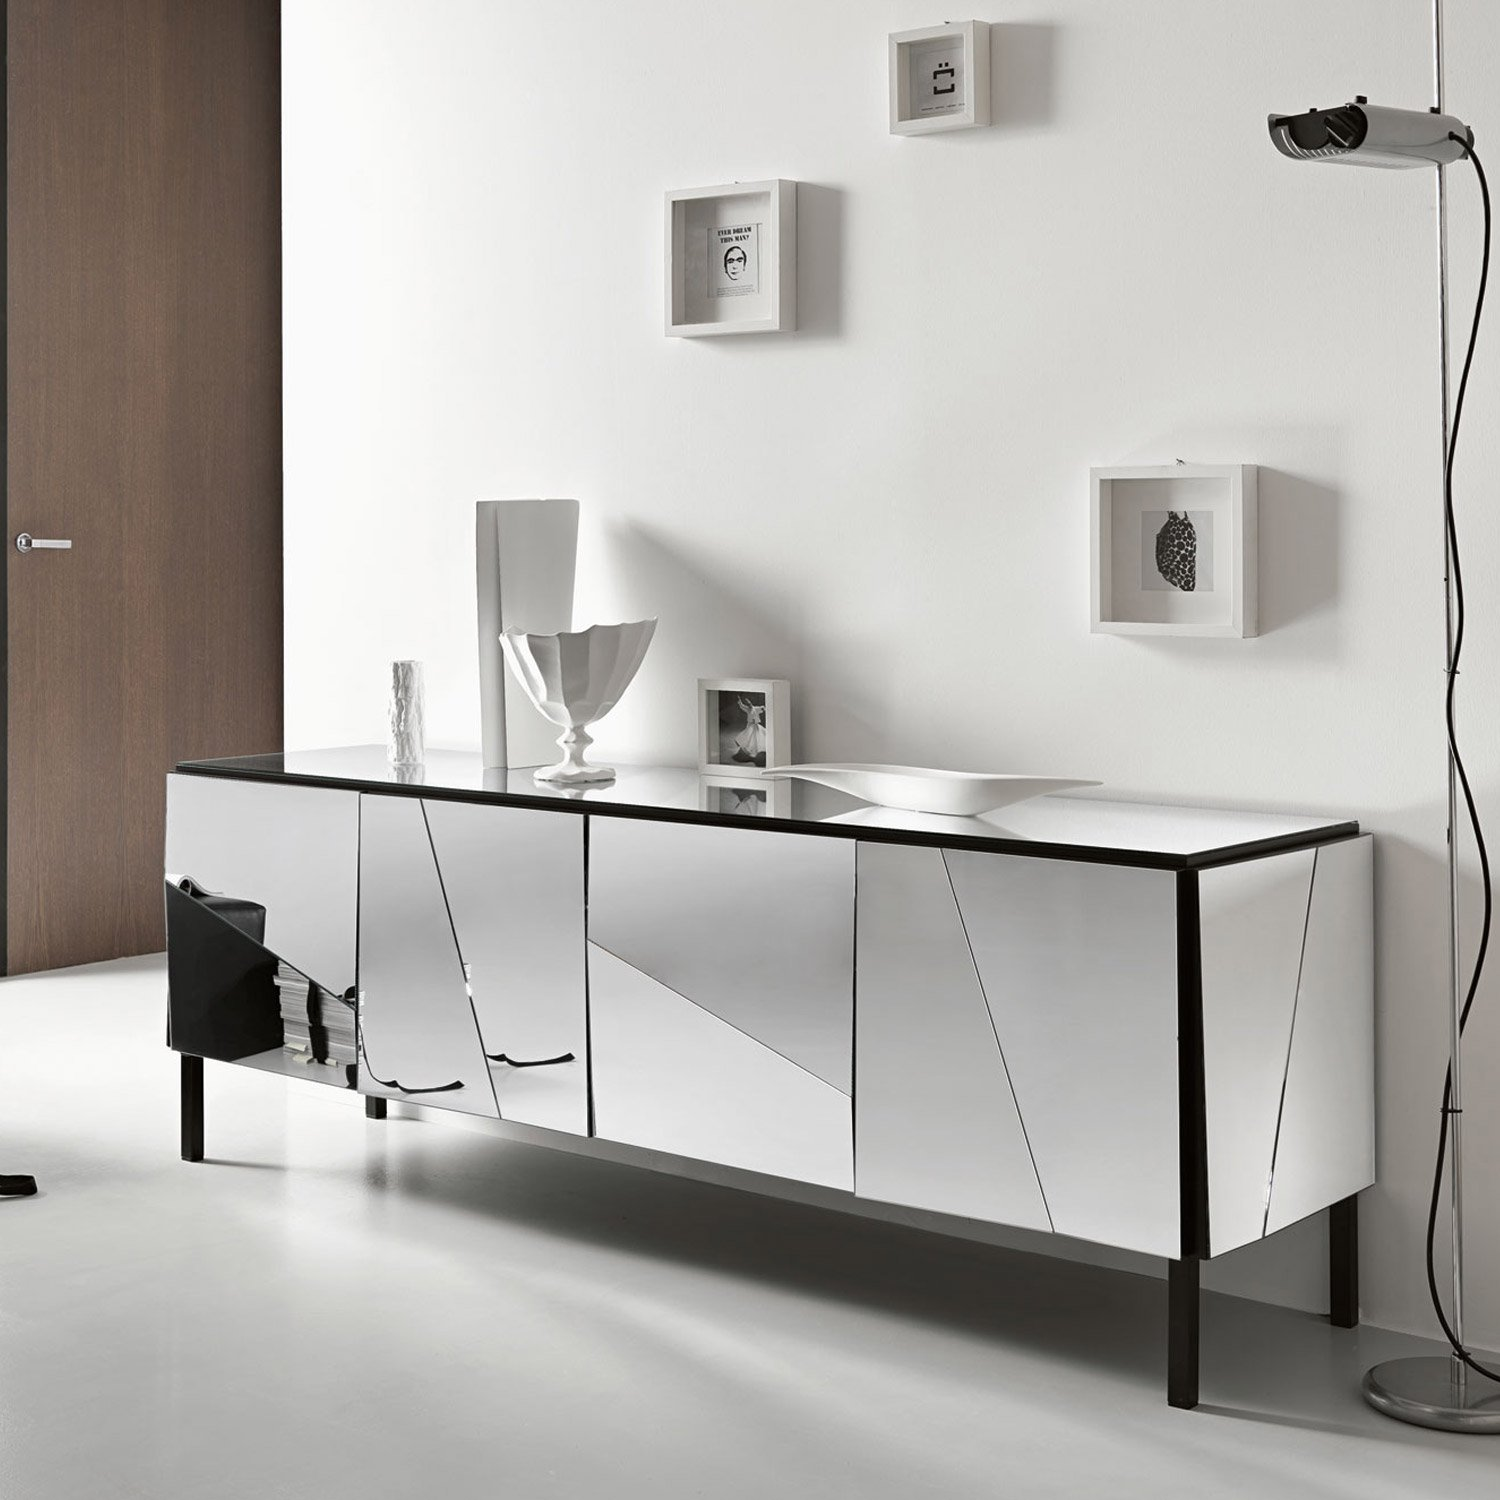 Psiche mirrored sideboard by tonelli klarity glass for Sideboard glas